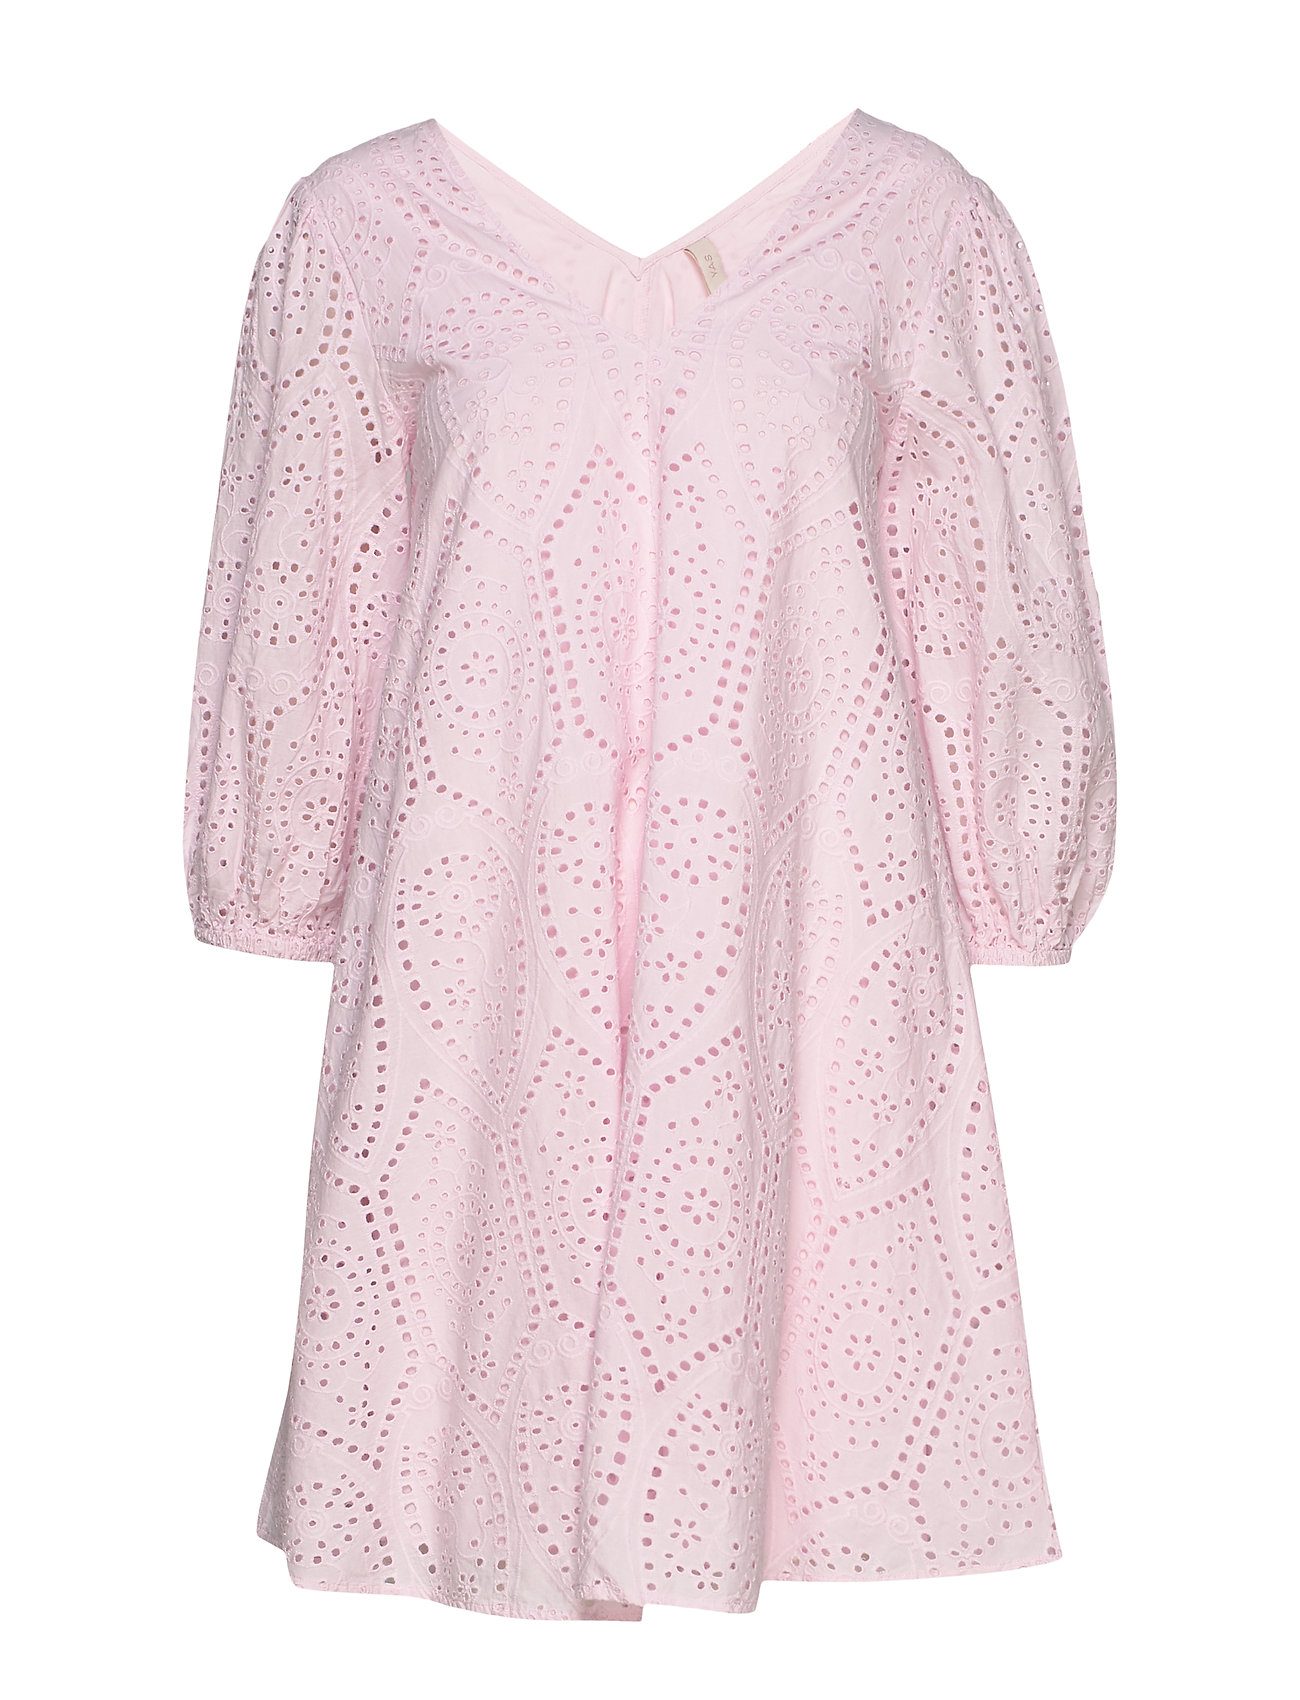 YAS YASPENNY 3/4 DRESS S. - CRADLE PINK